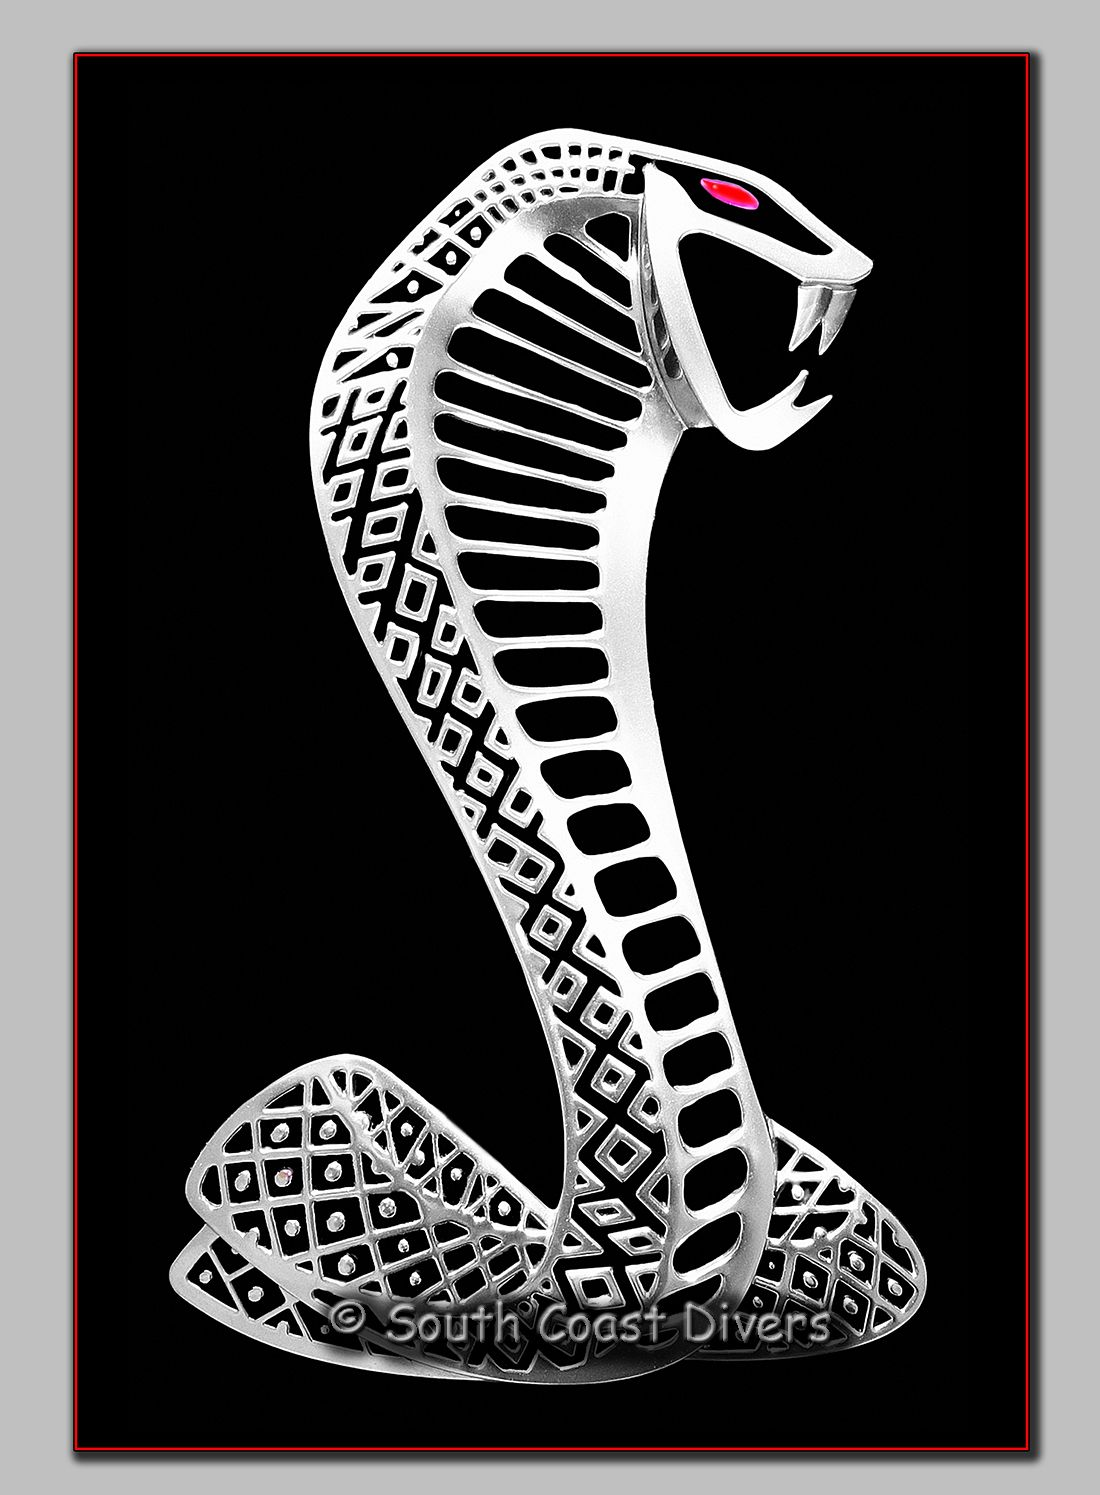 shelby cobra emblem cause it is my namesake mustang logo cobra tattoo mustang shelby cobra emblem cause it is my